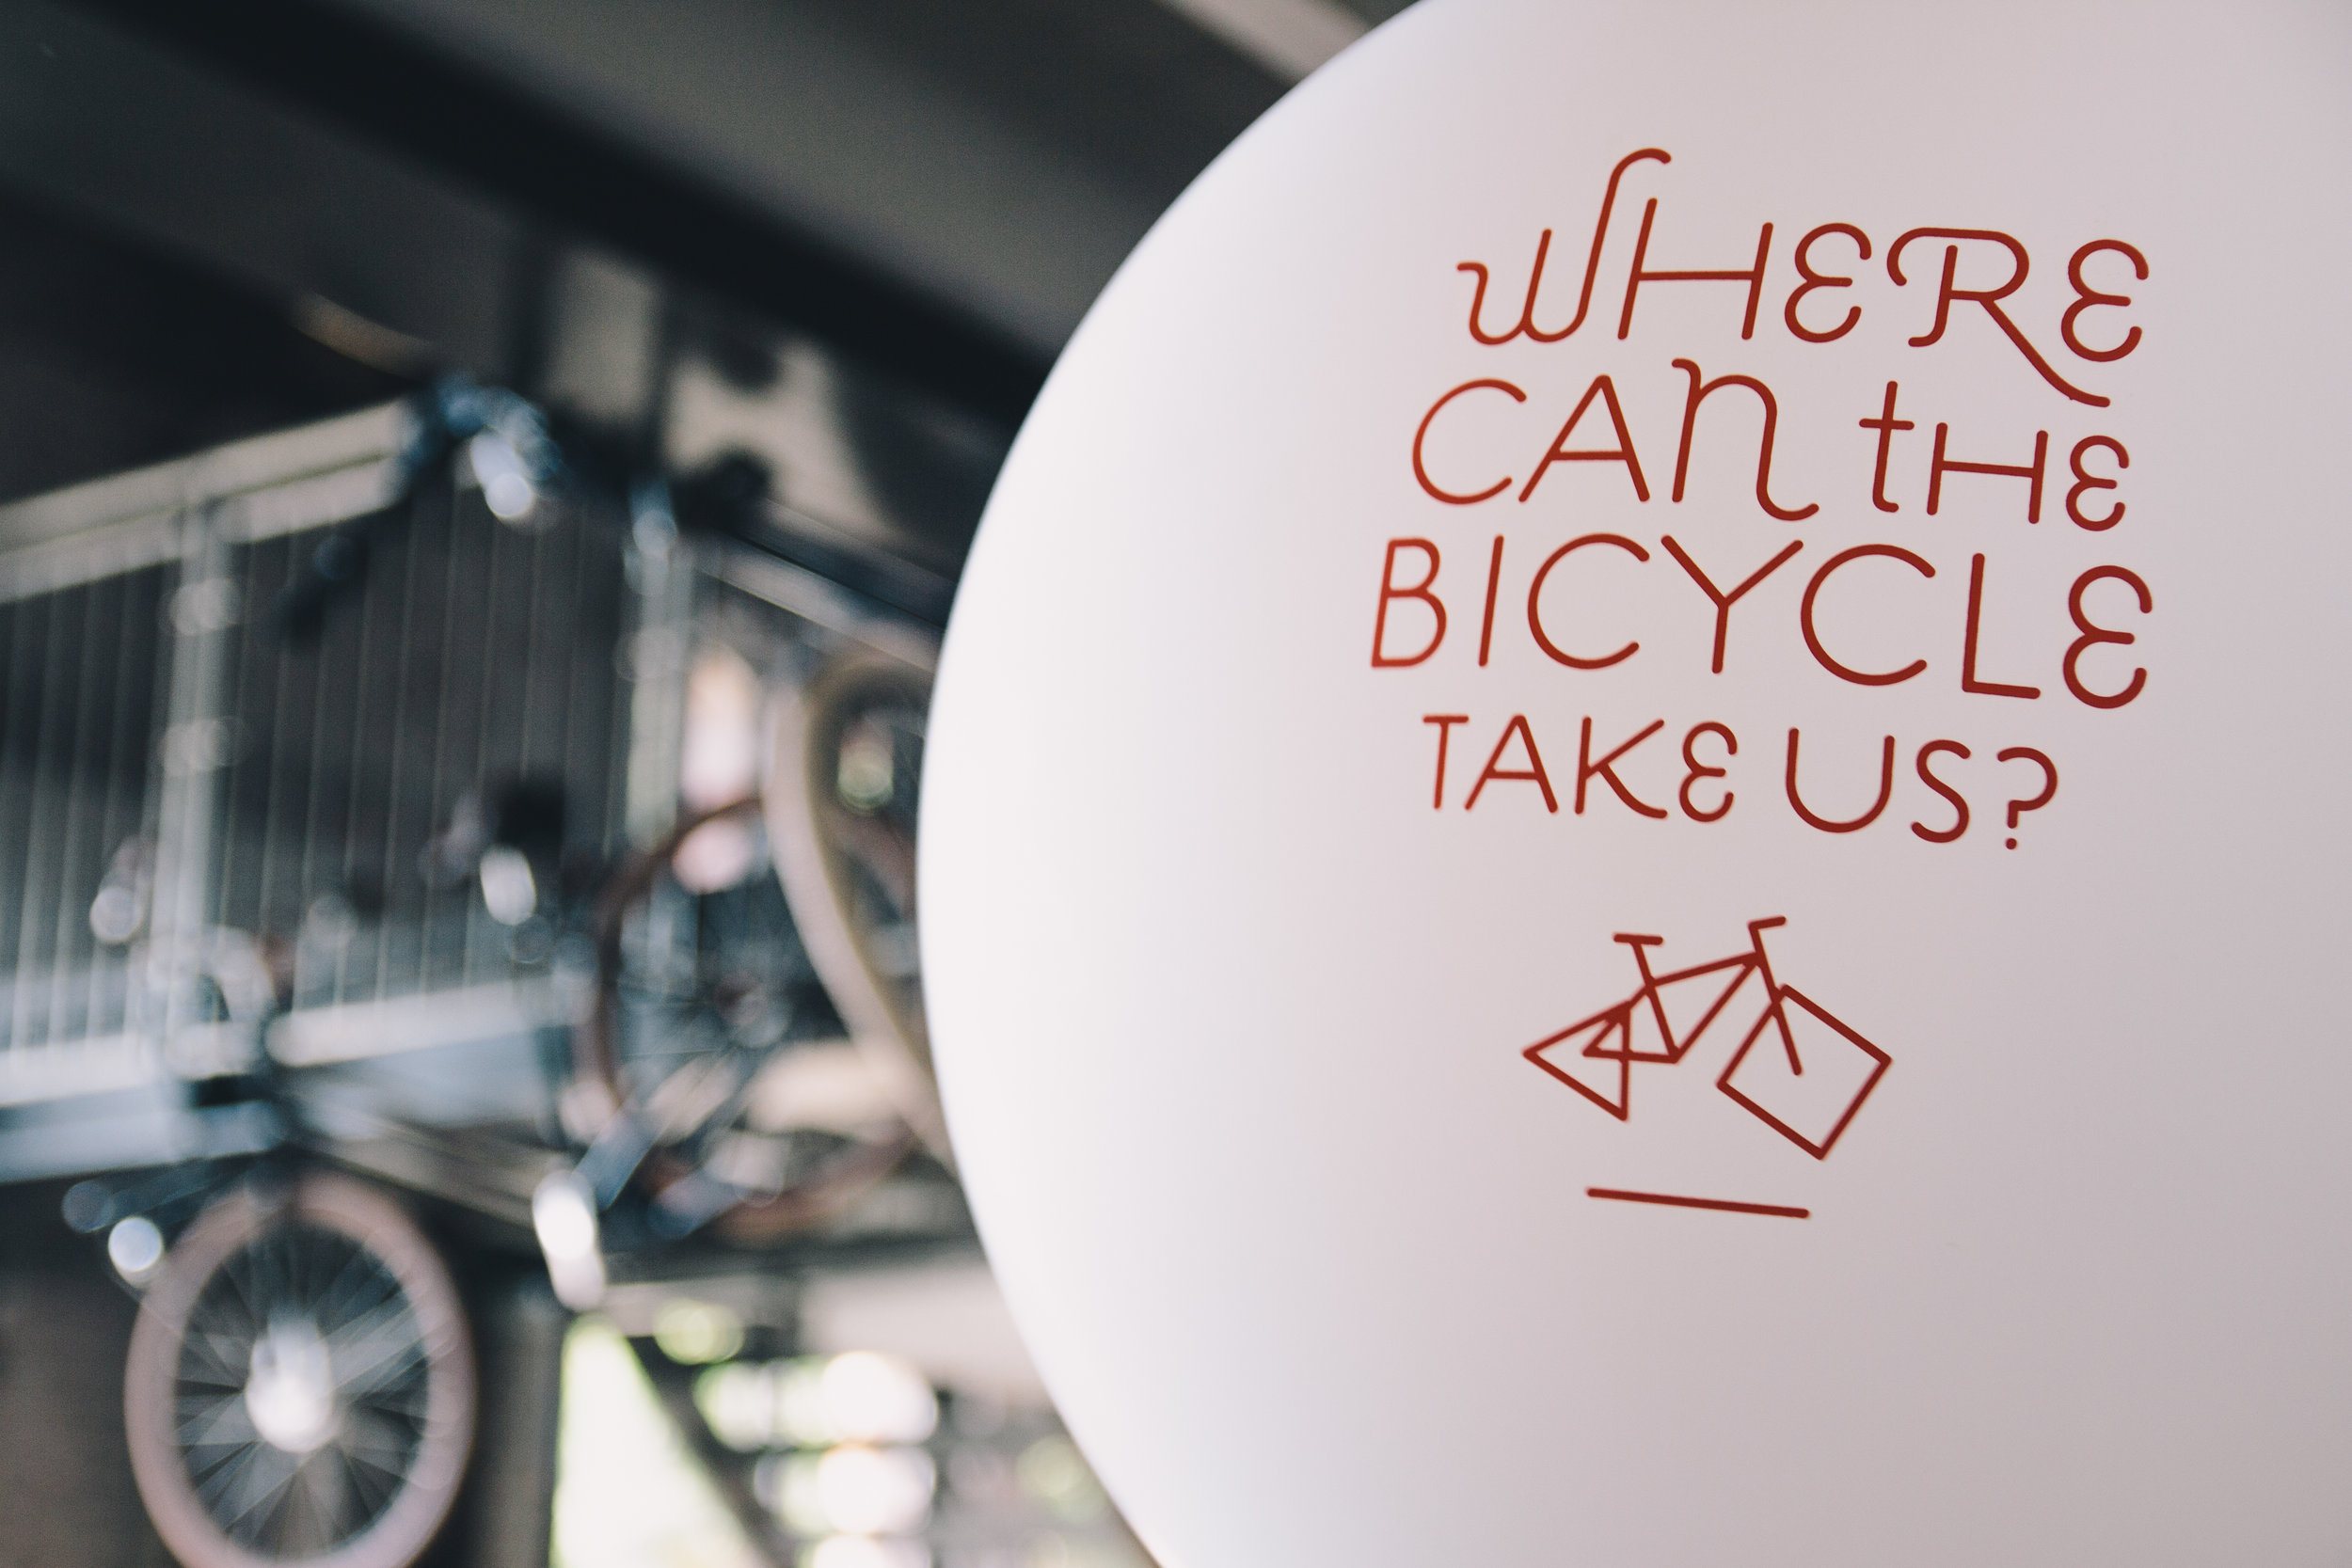 Balloon Where can the bicycle take us.jpg